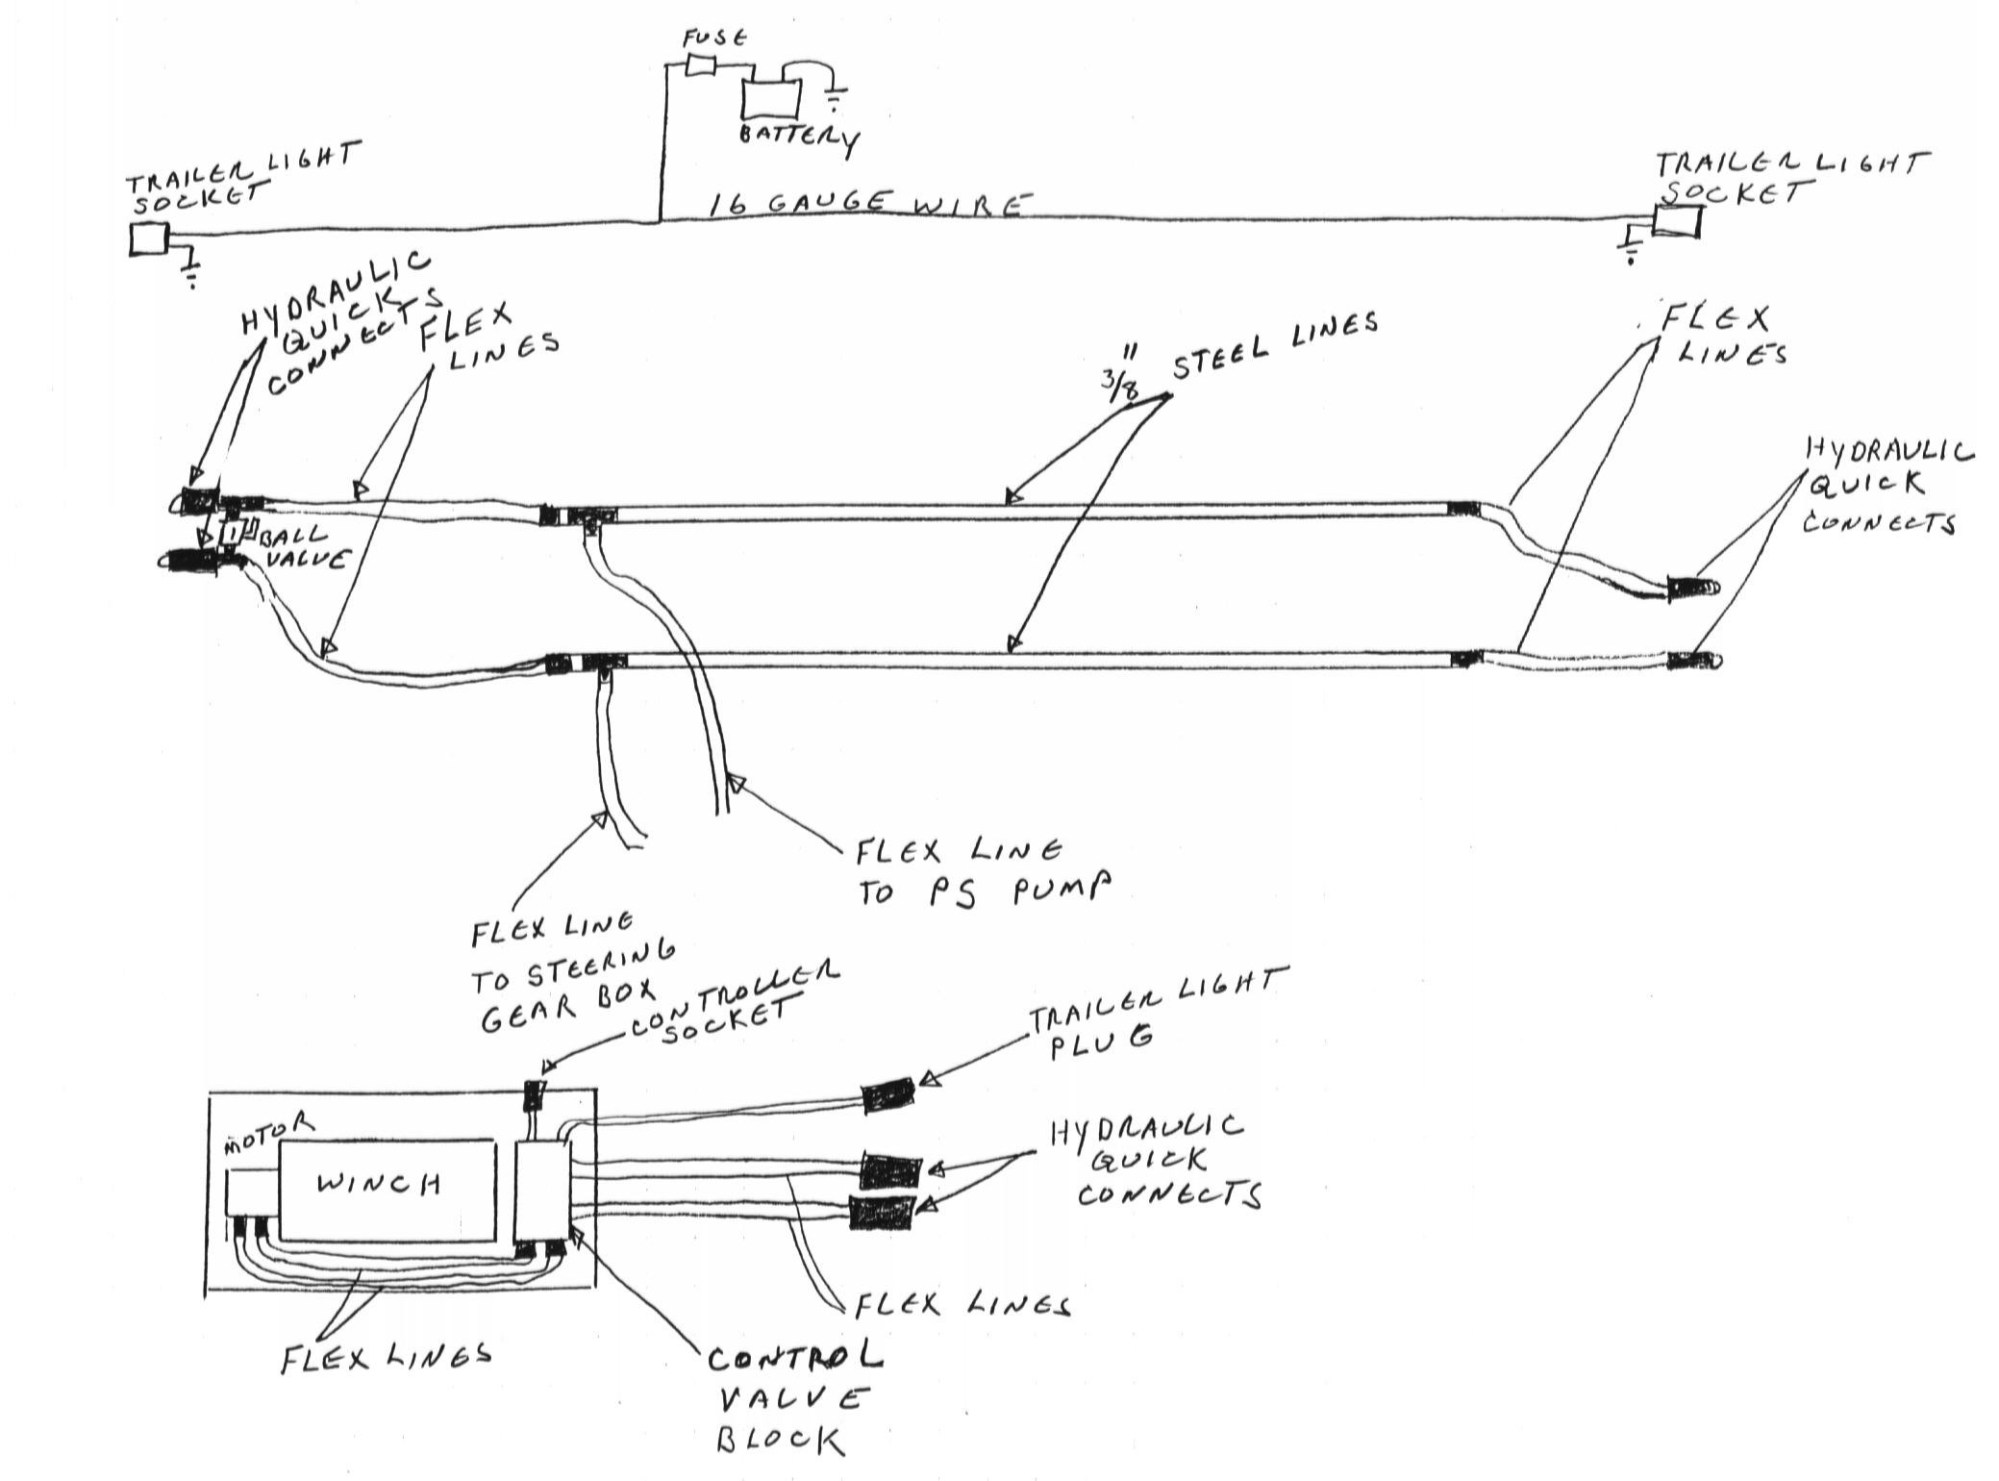 hight resolution of chicago electric winch wiring diagram gallerychicago electric winch wiring diagram ac winch wiring diagram fresh badland